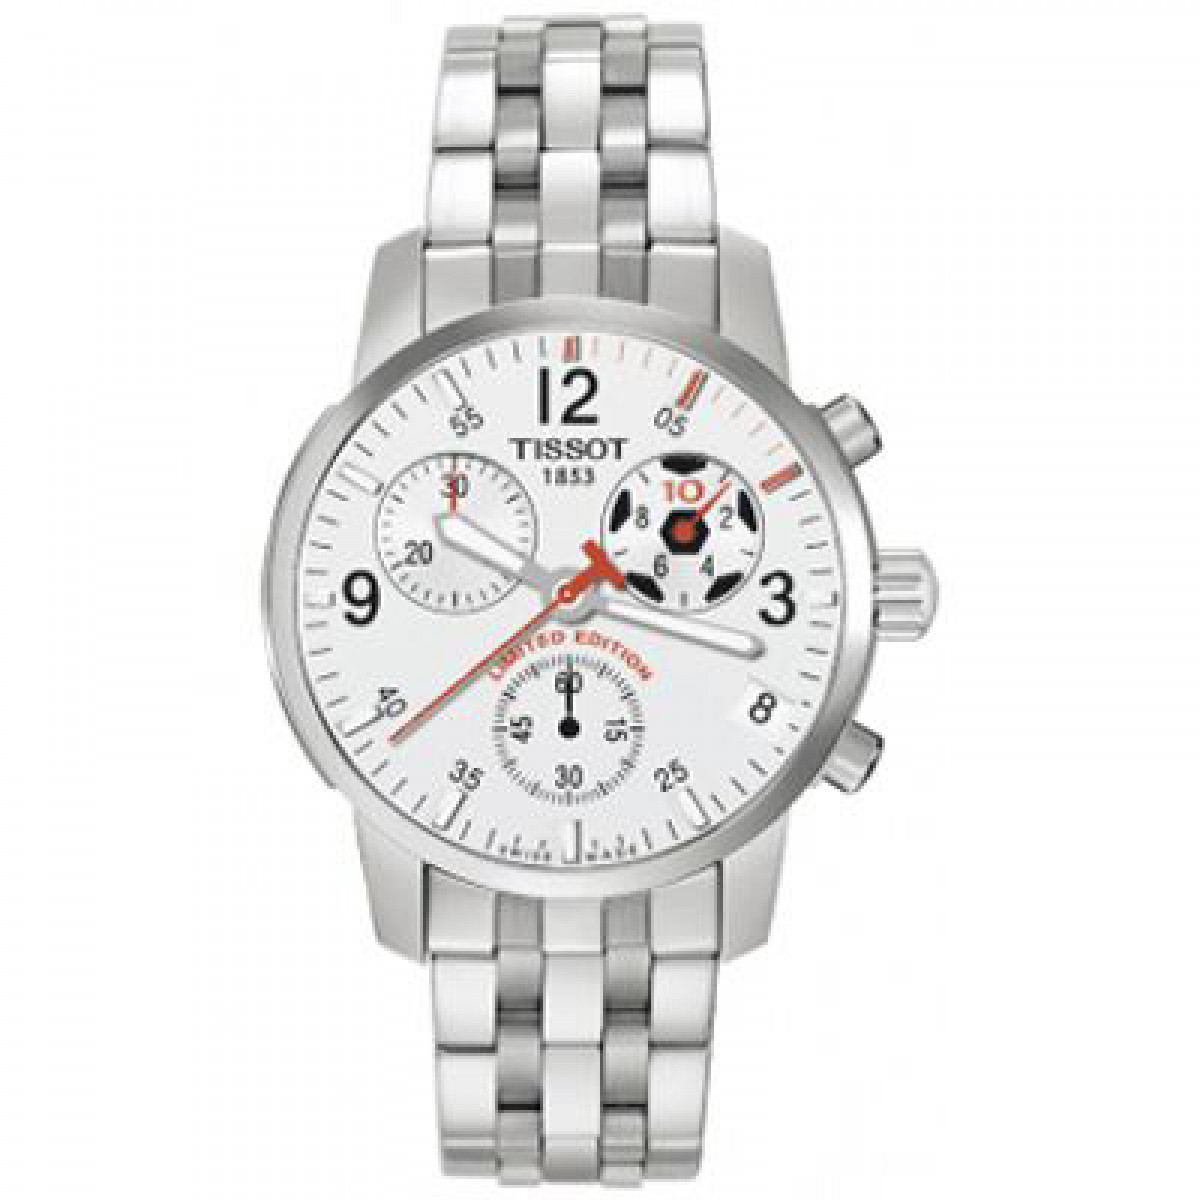 Mens Tissot PRC 200 Limited Edition Chronograph Watch T17188632